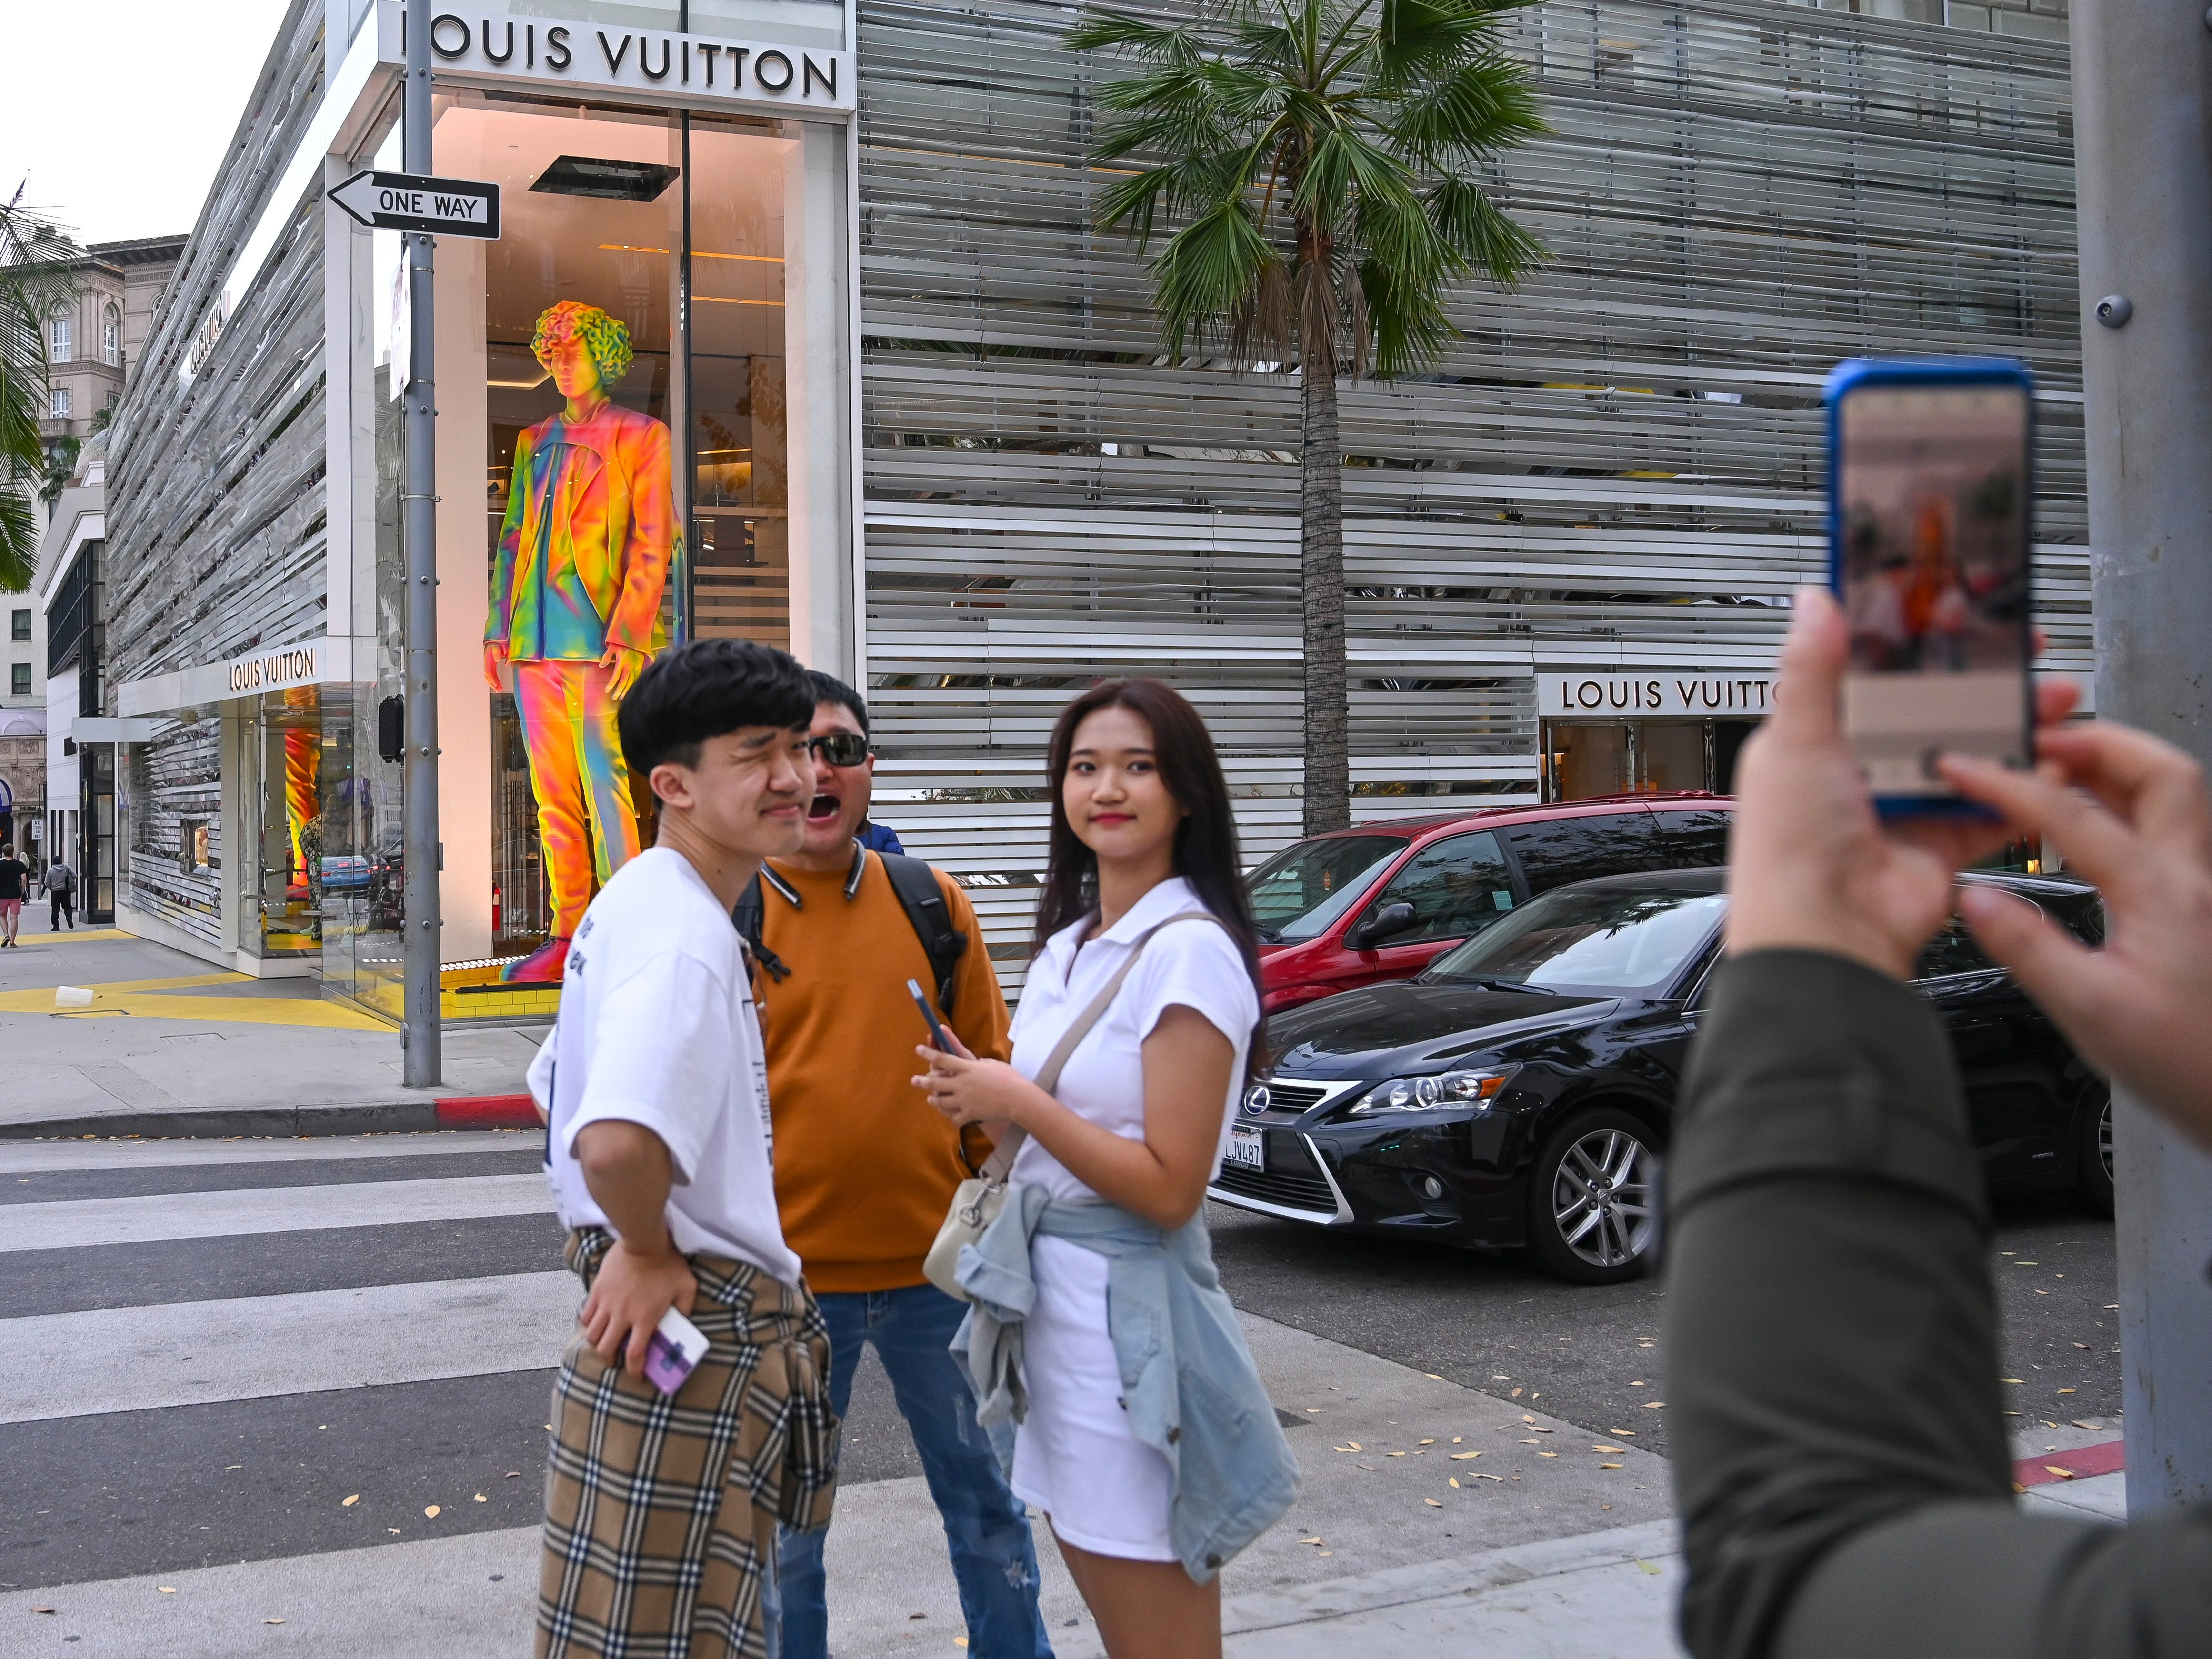 Tourist have a snapshot taken in from of the Louis Vuitton store on Rodeo Drive, Jan. 29, 2019.